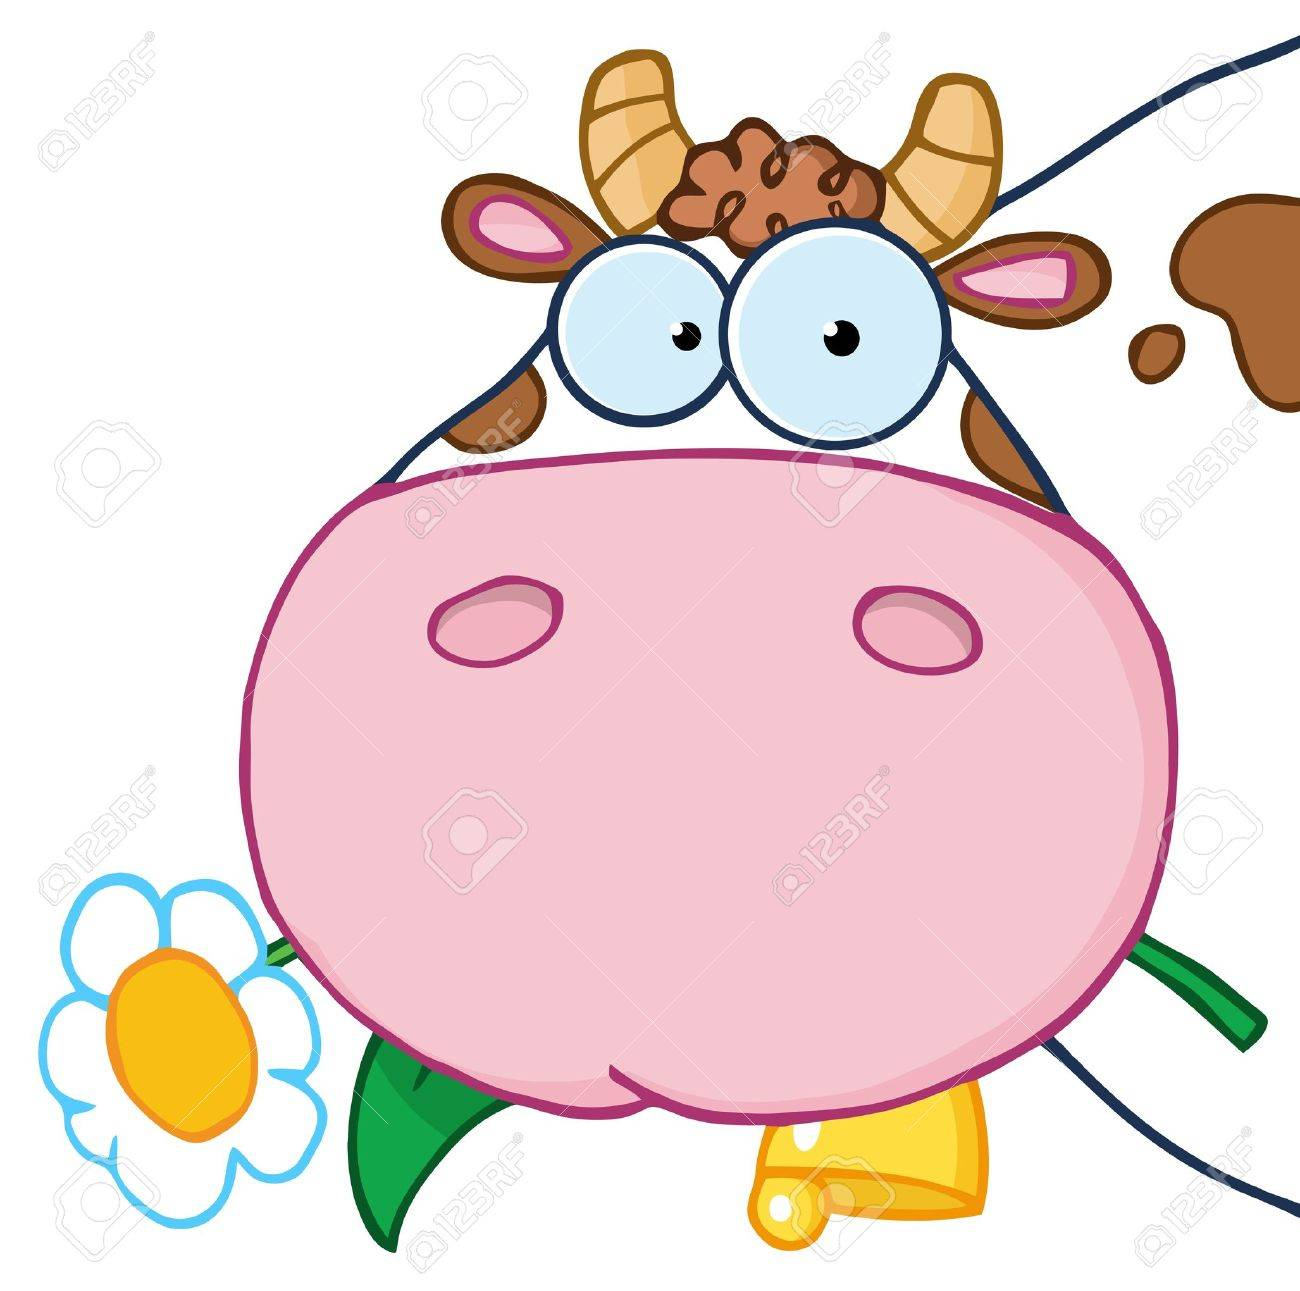 Cow Head Cartoon Character Carrying A Flower In Its Mouth